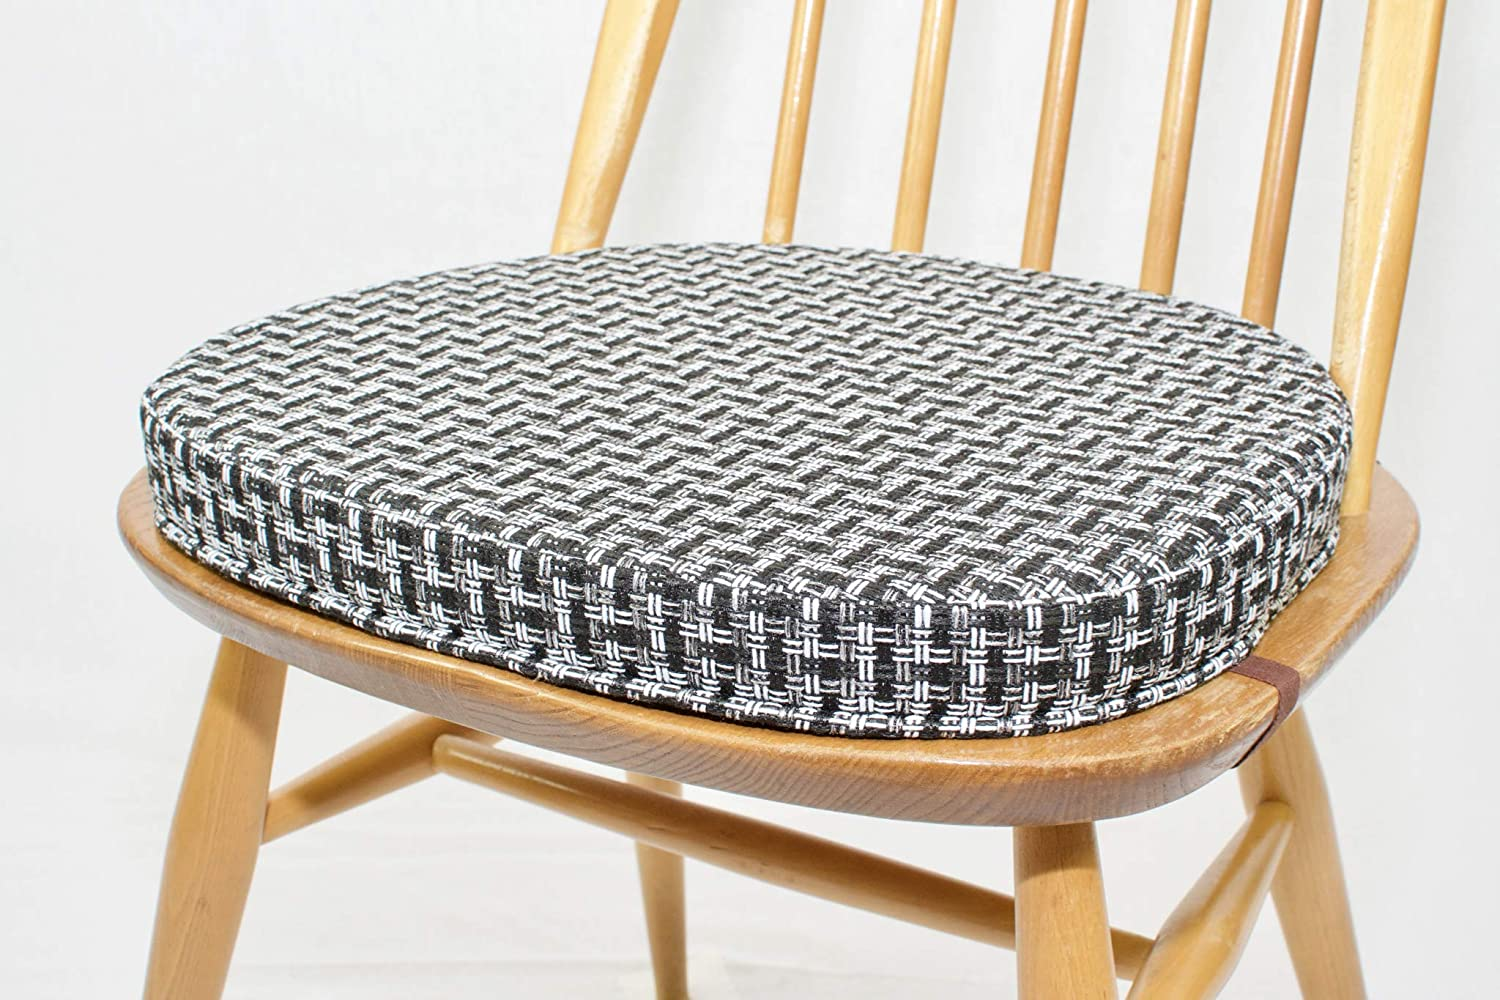 Prime Inspirado Seat Cushions For Ercol Windsor Dining Chairs Alphanode Cool Chair Designs And Ideas Alphanodeonline